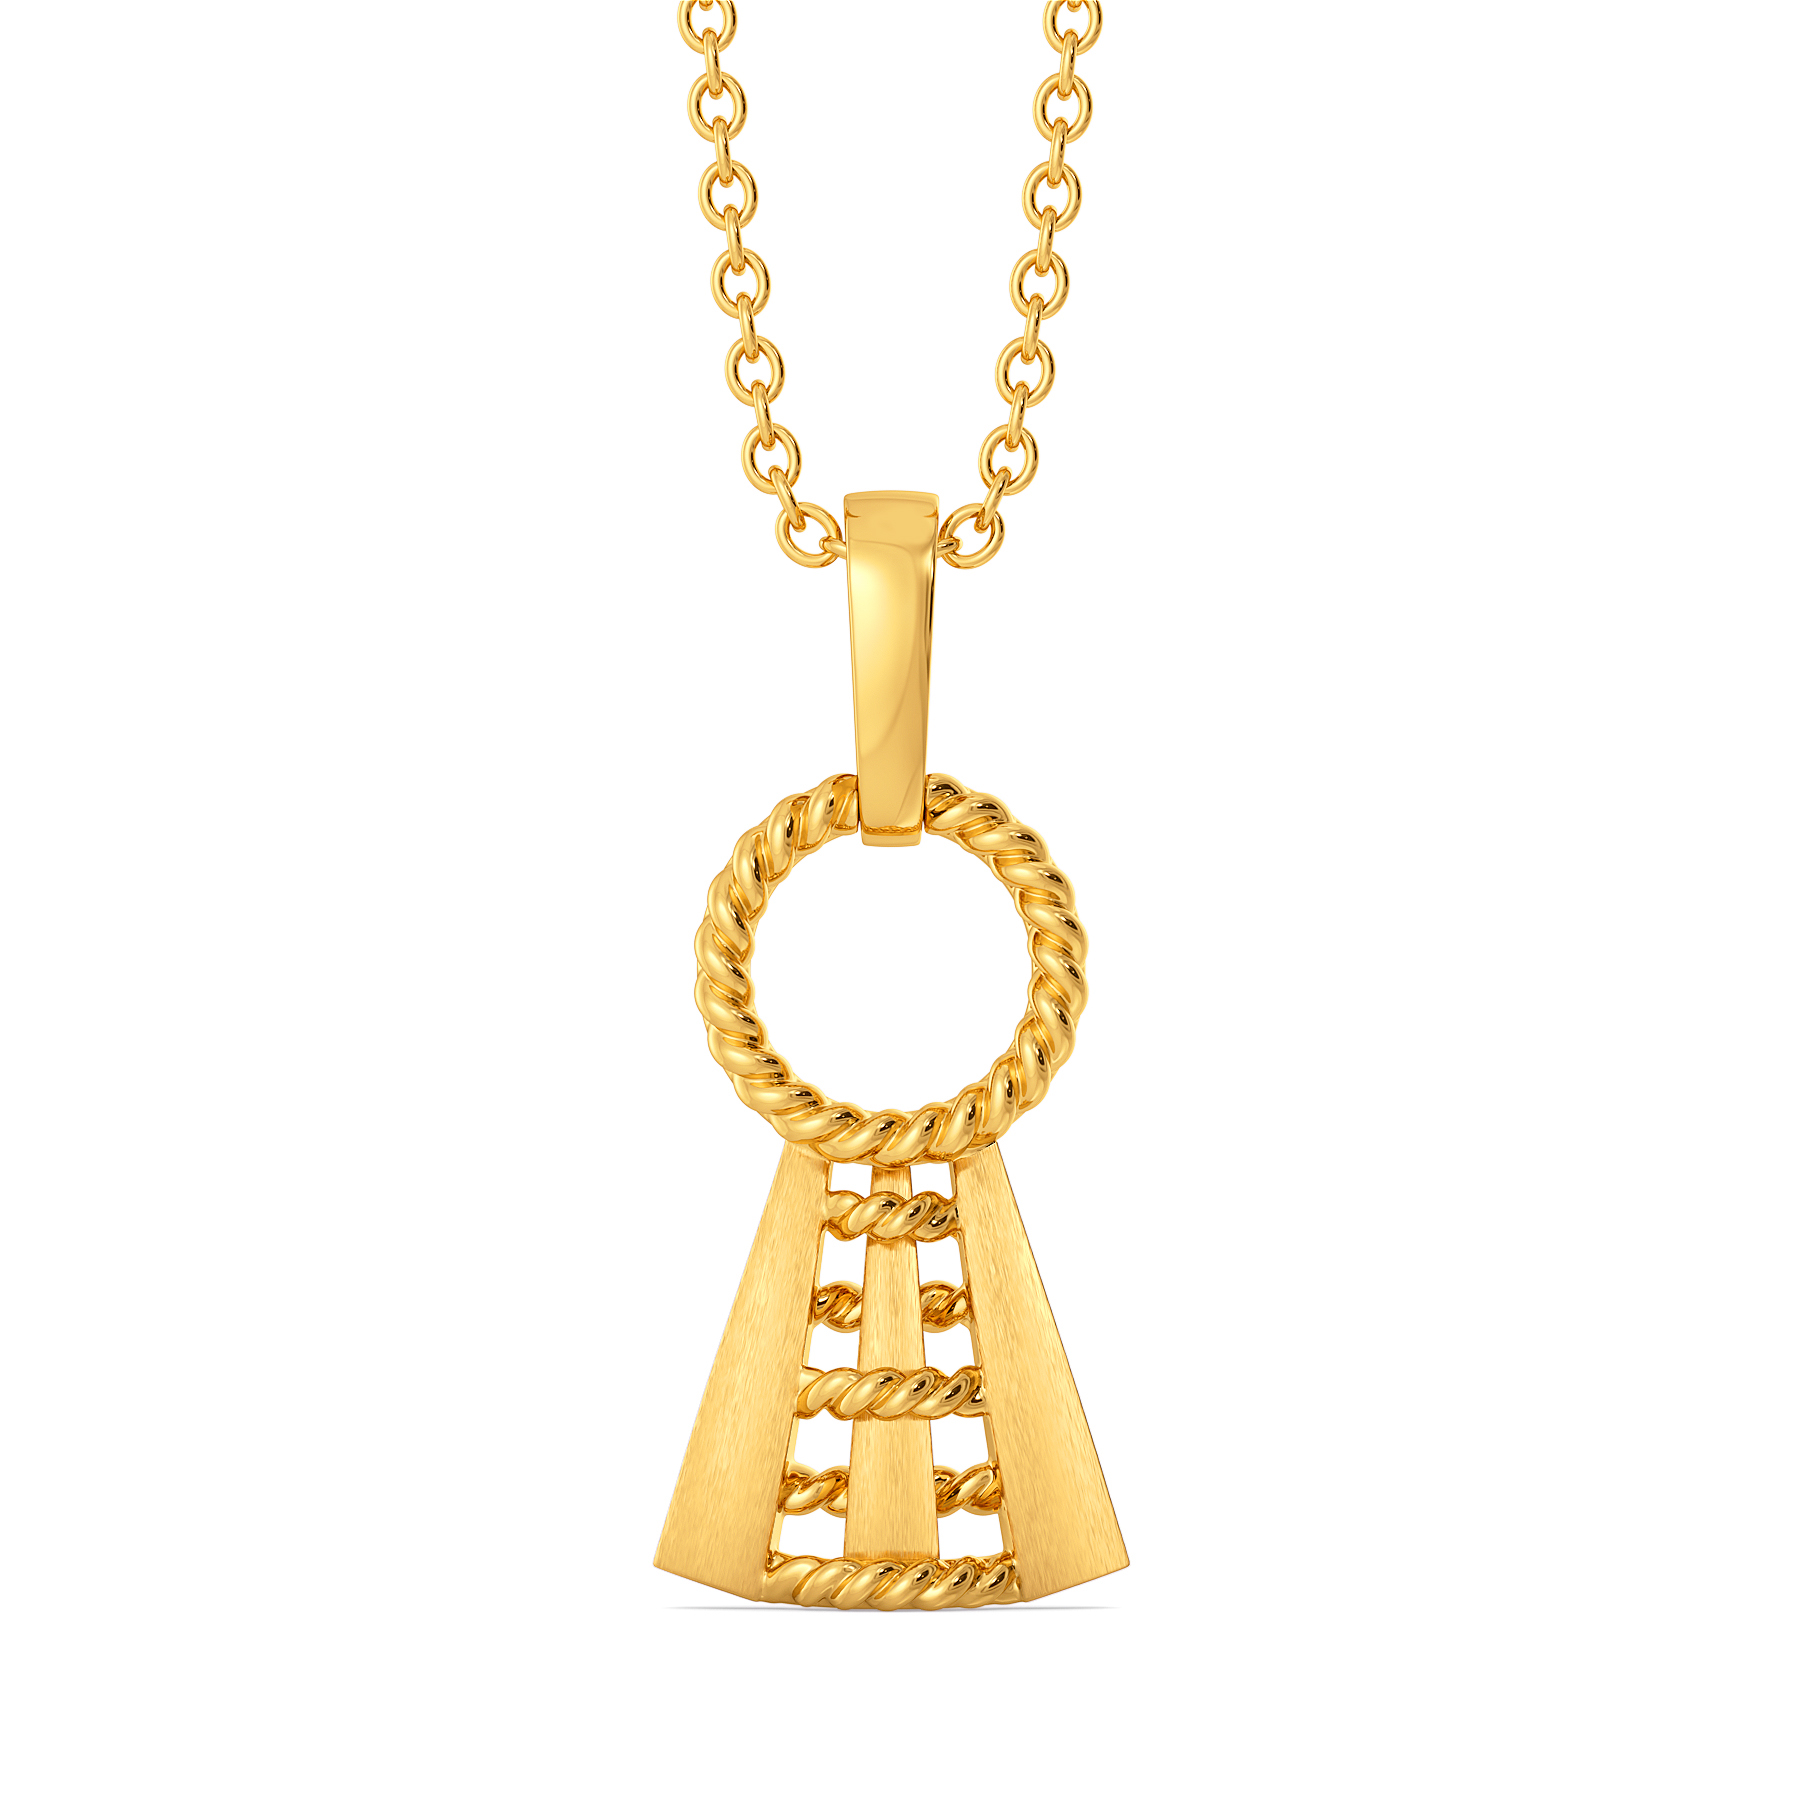 Practically Entwined Gold Pendants